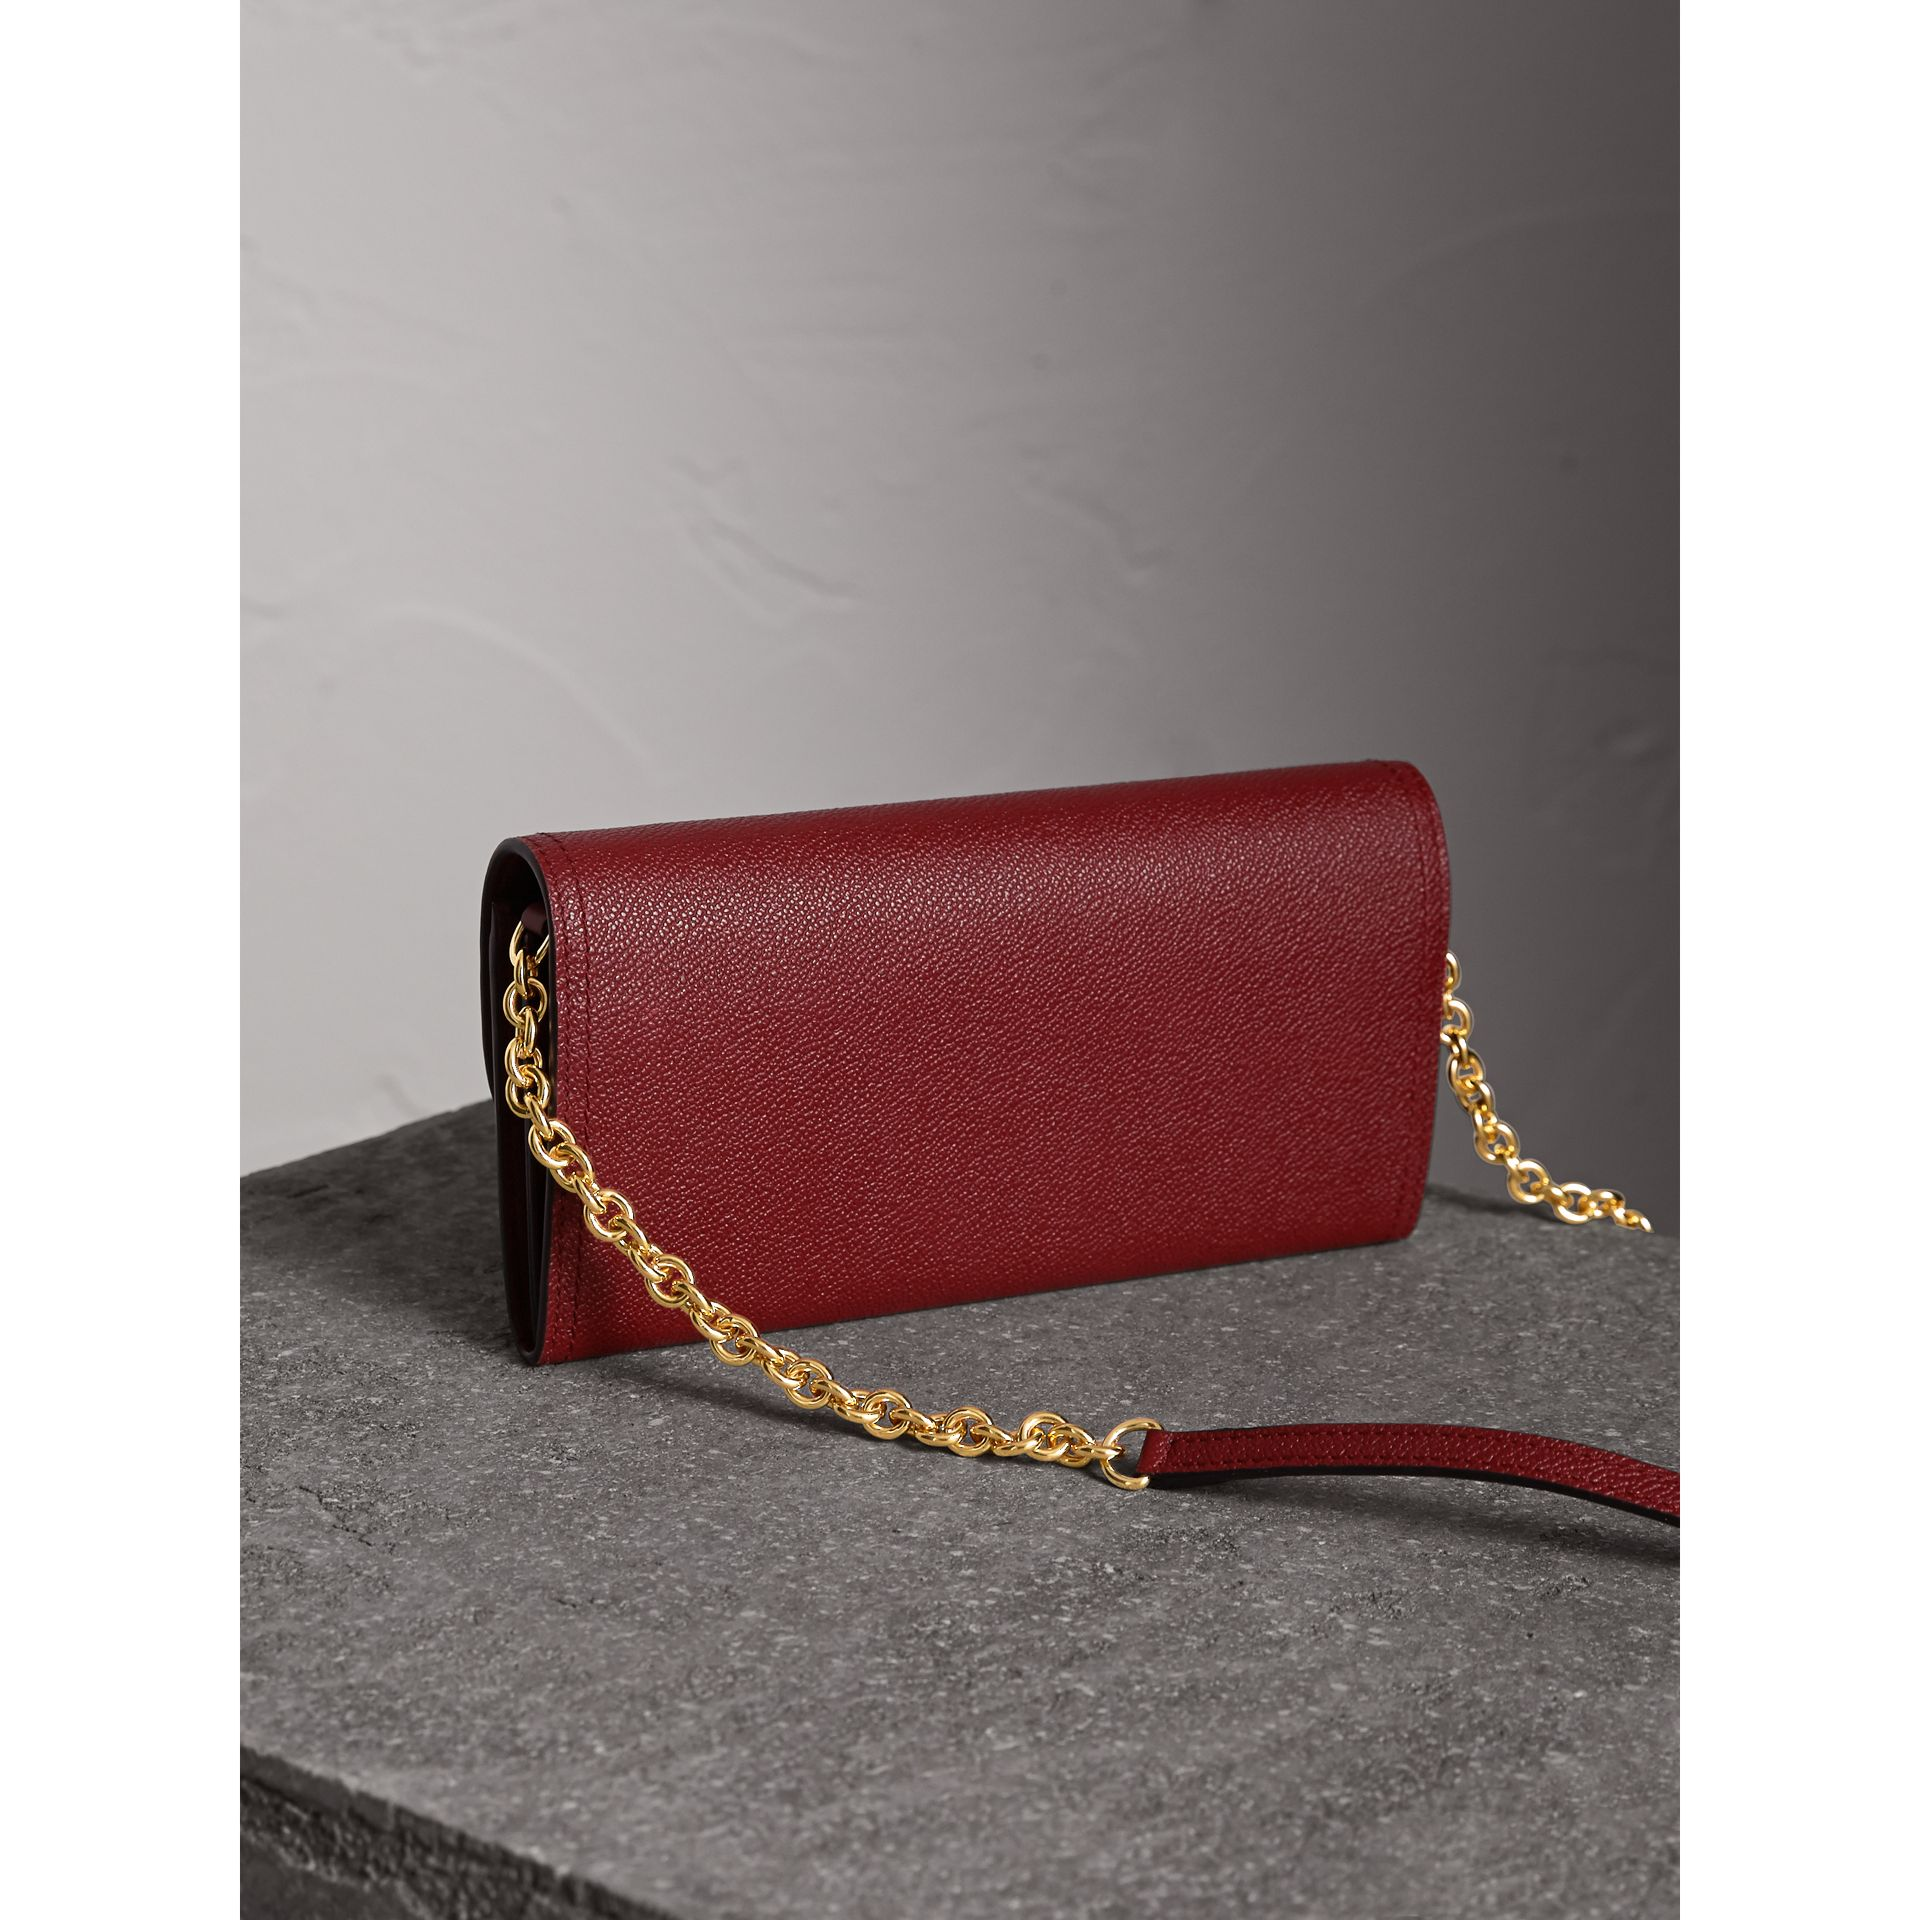 Leather Wallet with Chain in Burgundy - Women | Burberry Australia - gallery image 5